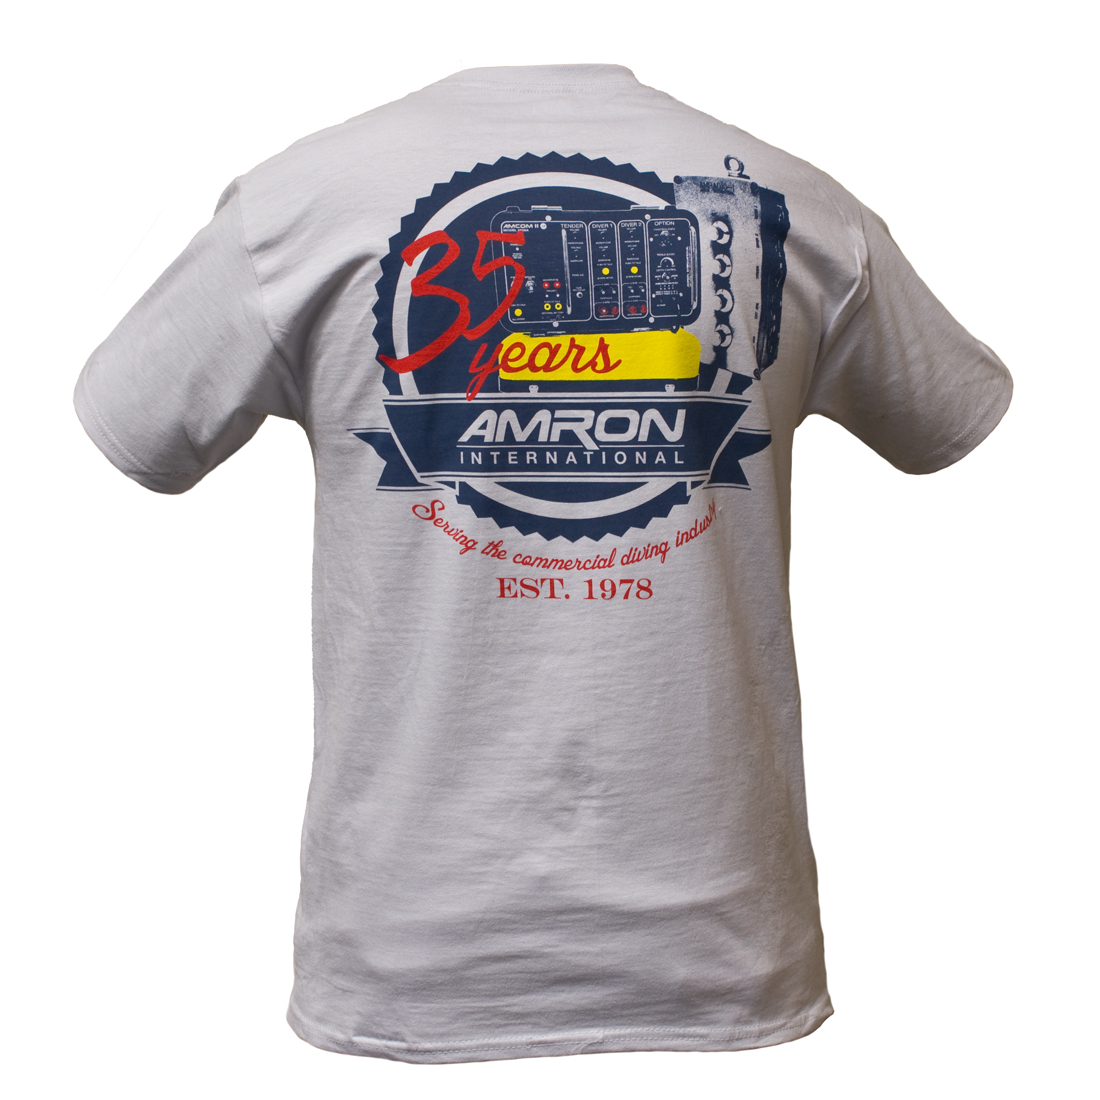 Amron International 35th Anniversary T-Shirt